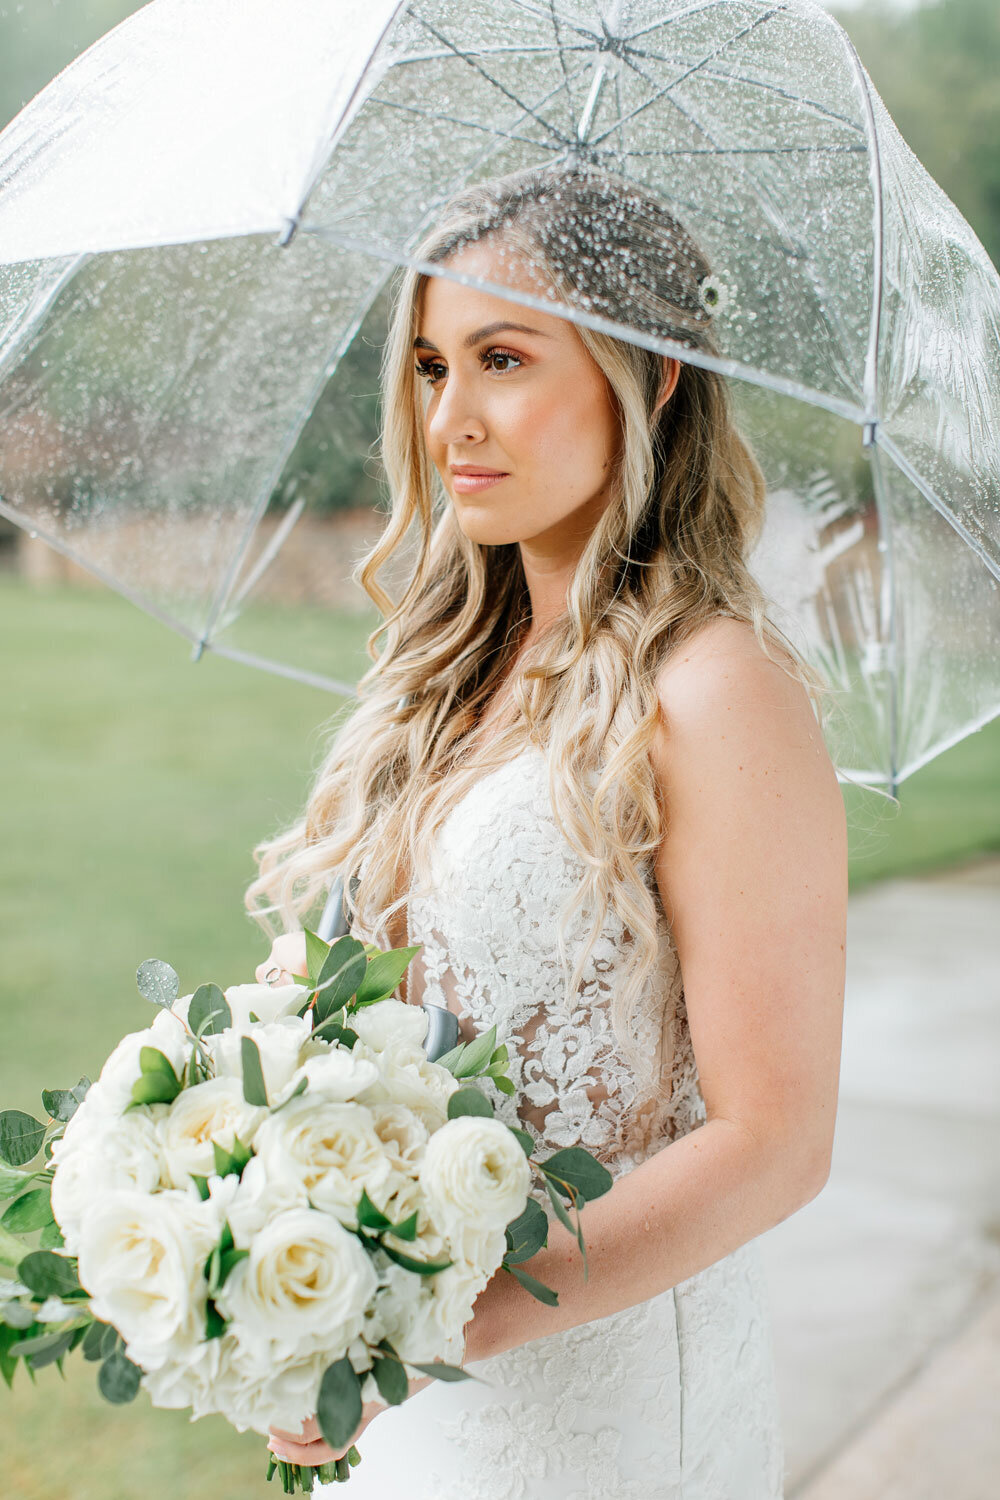 rainy wedding day bride with clear umbrella pretty rain photos